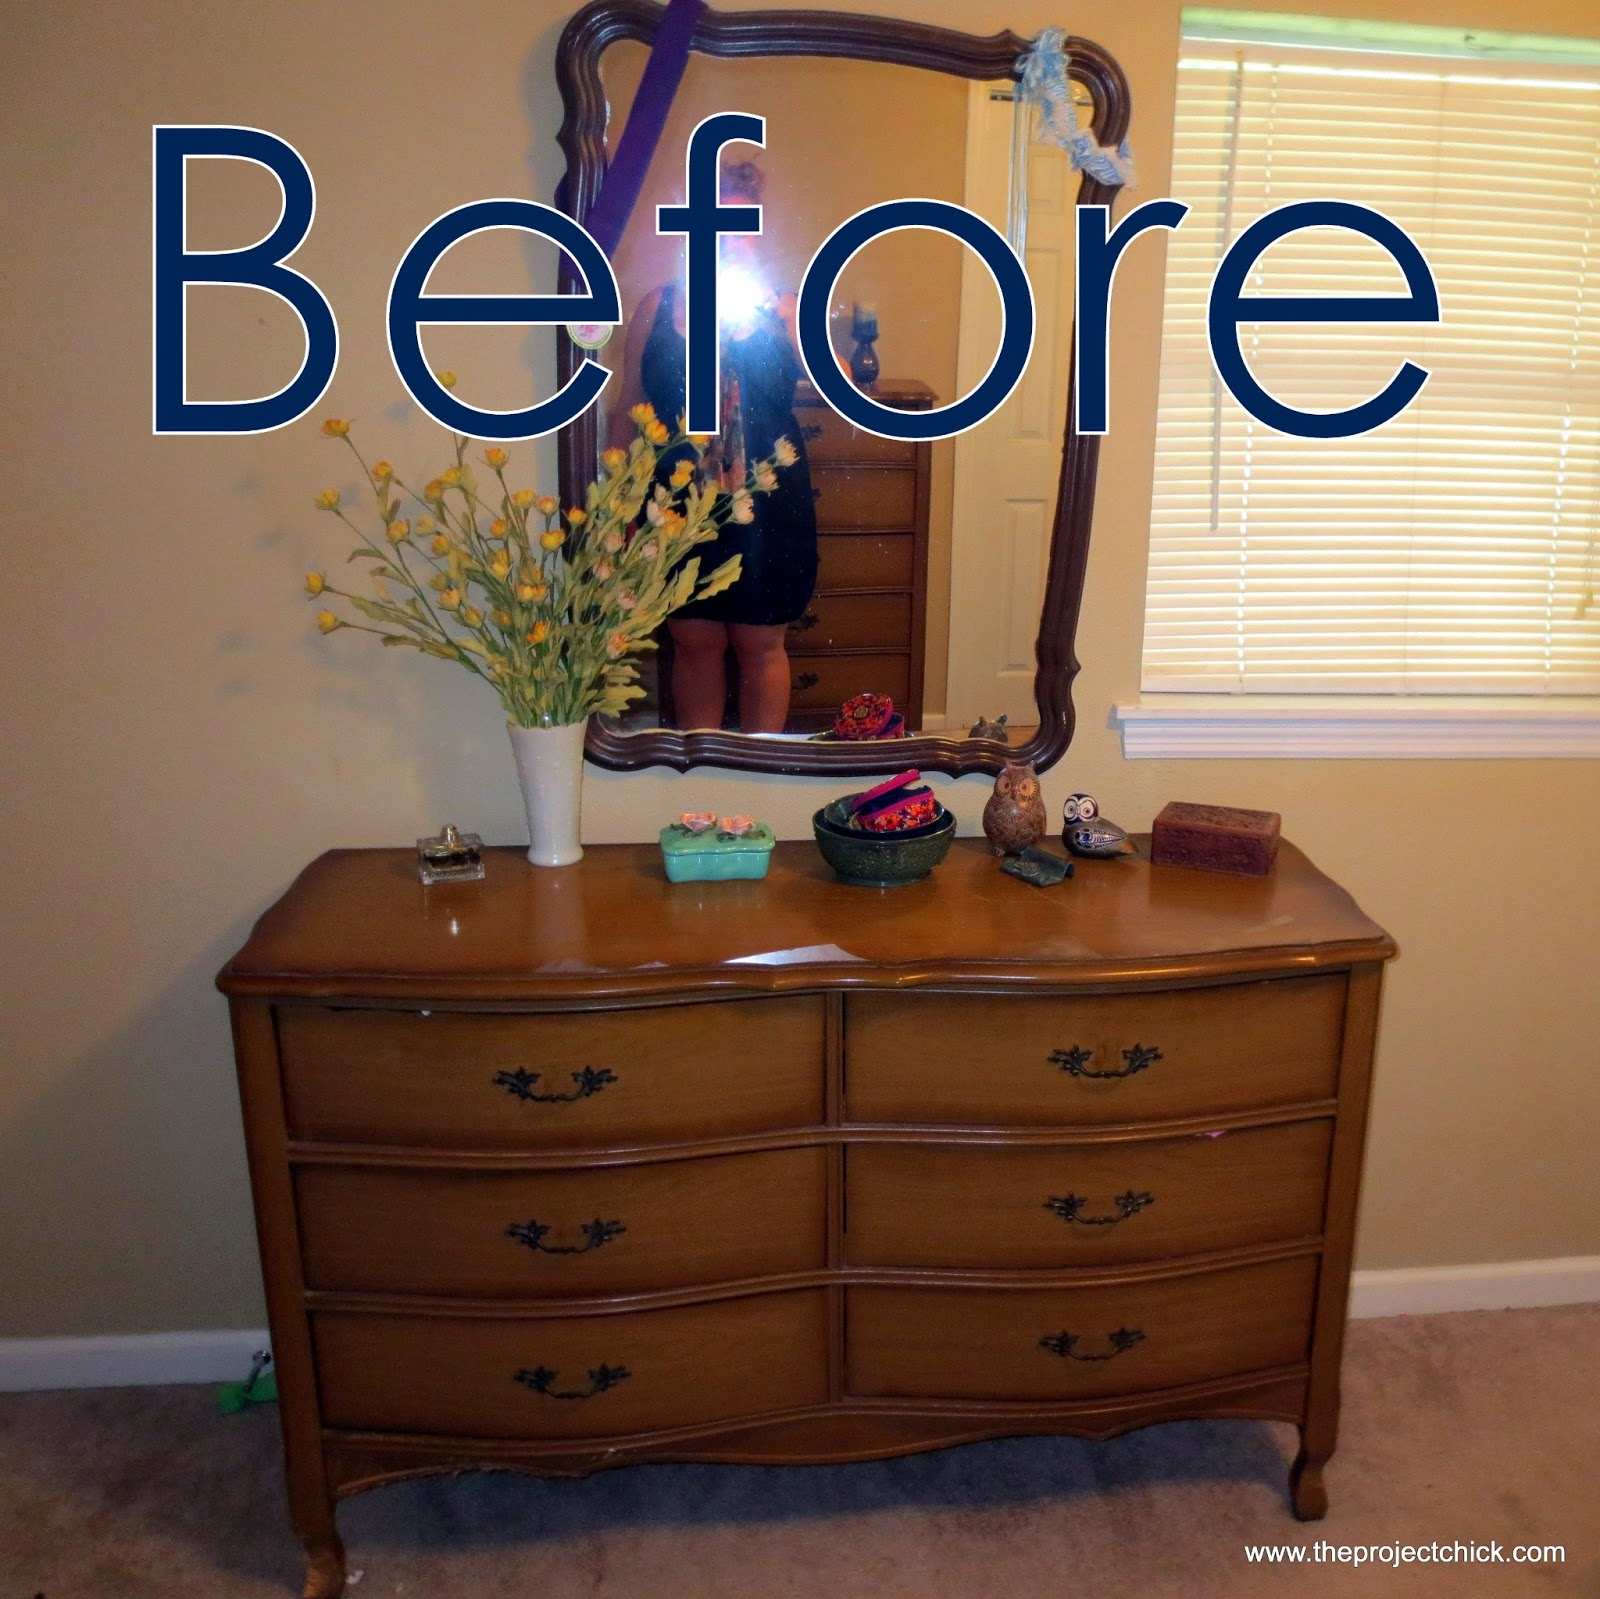 Refinishing Our Bedroom Furniture. The Project Chick  Refinishing Our Bedroom Furniture